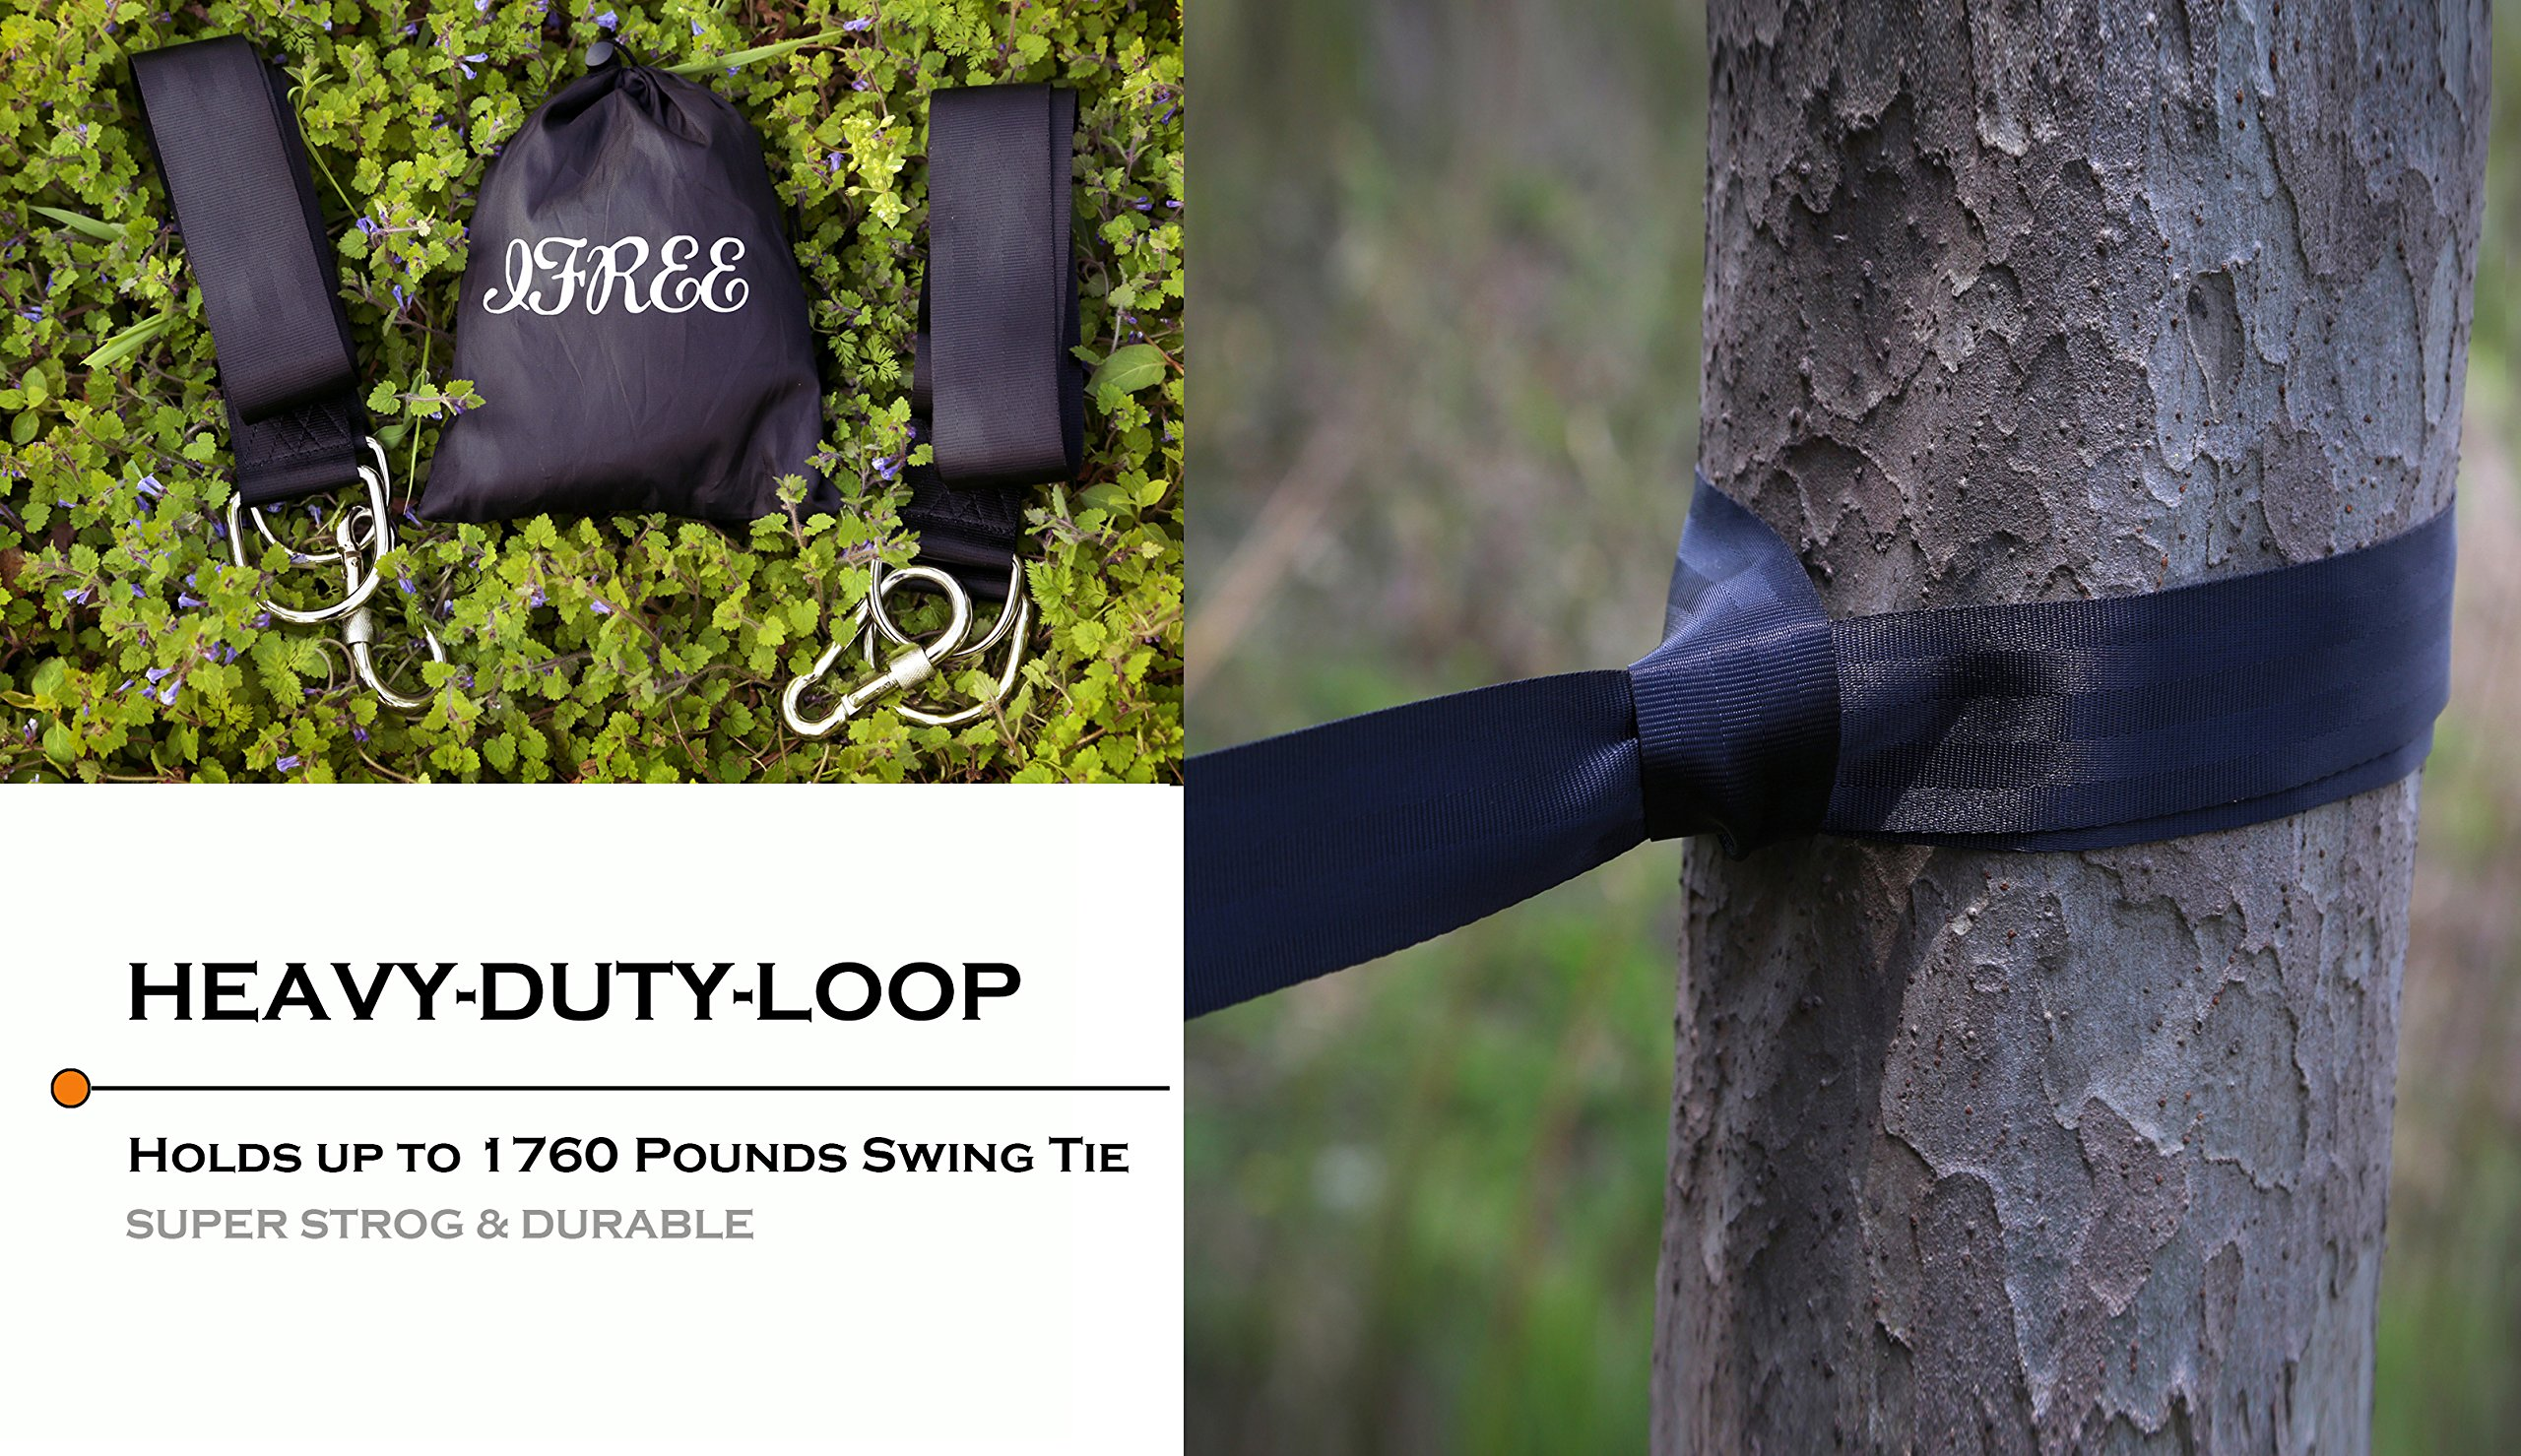 IFREE Tree Swing Straps Set, Safety Swing Handing Rope, Easy & Fast Swing Hanger Installation to Tree, Holds up to 1760 Pounds Swing Tie With 2 Strap & Snap Stainless Steel Carabiner Hooks- Black by IFREE (Image #8)